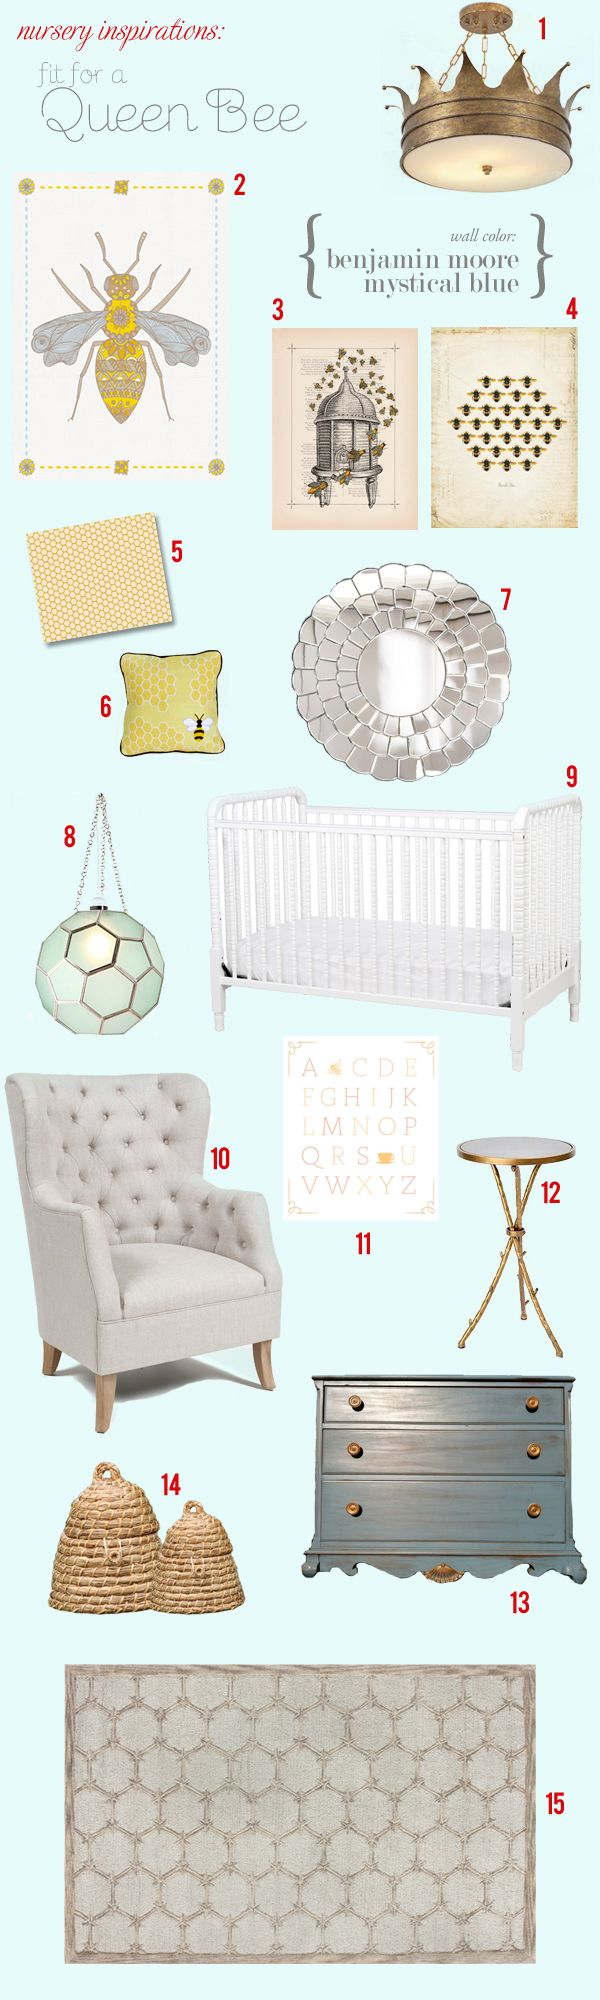 My future kid's nursery must be bee themed, obvi